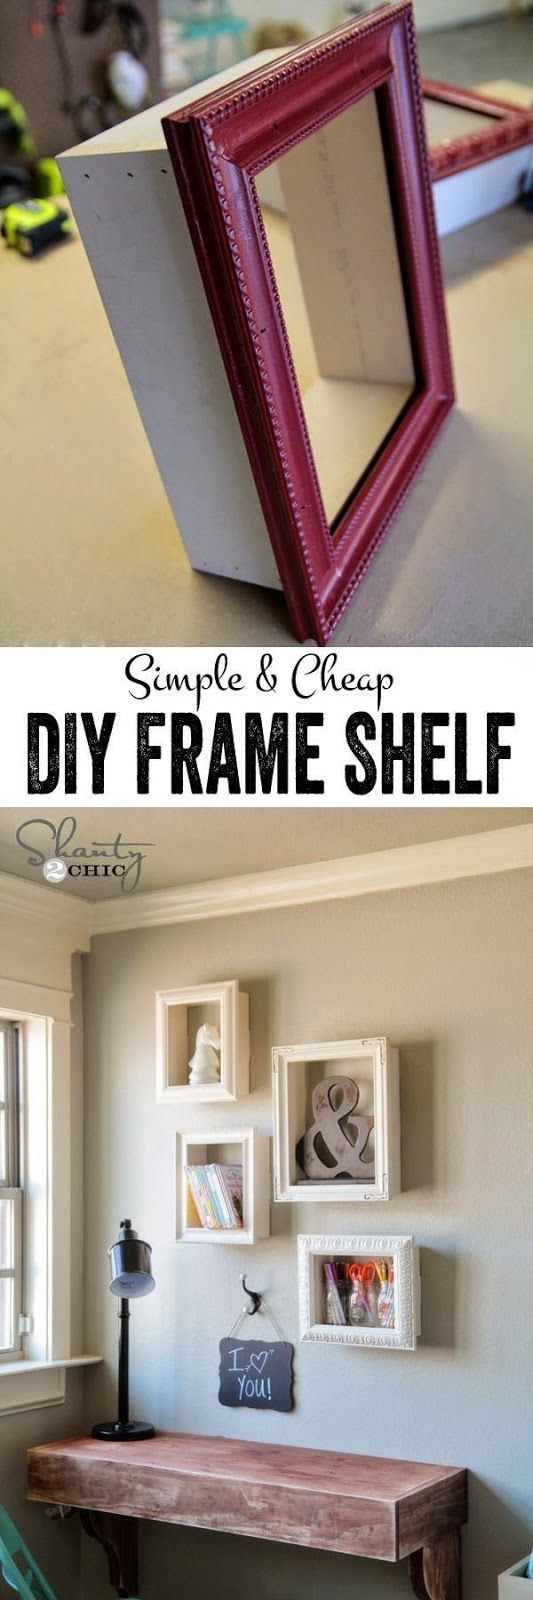 Best DIY Projects: DIY Frame Shelves